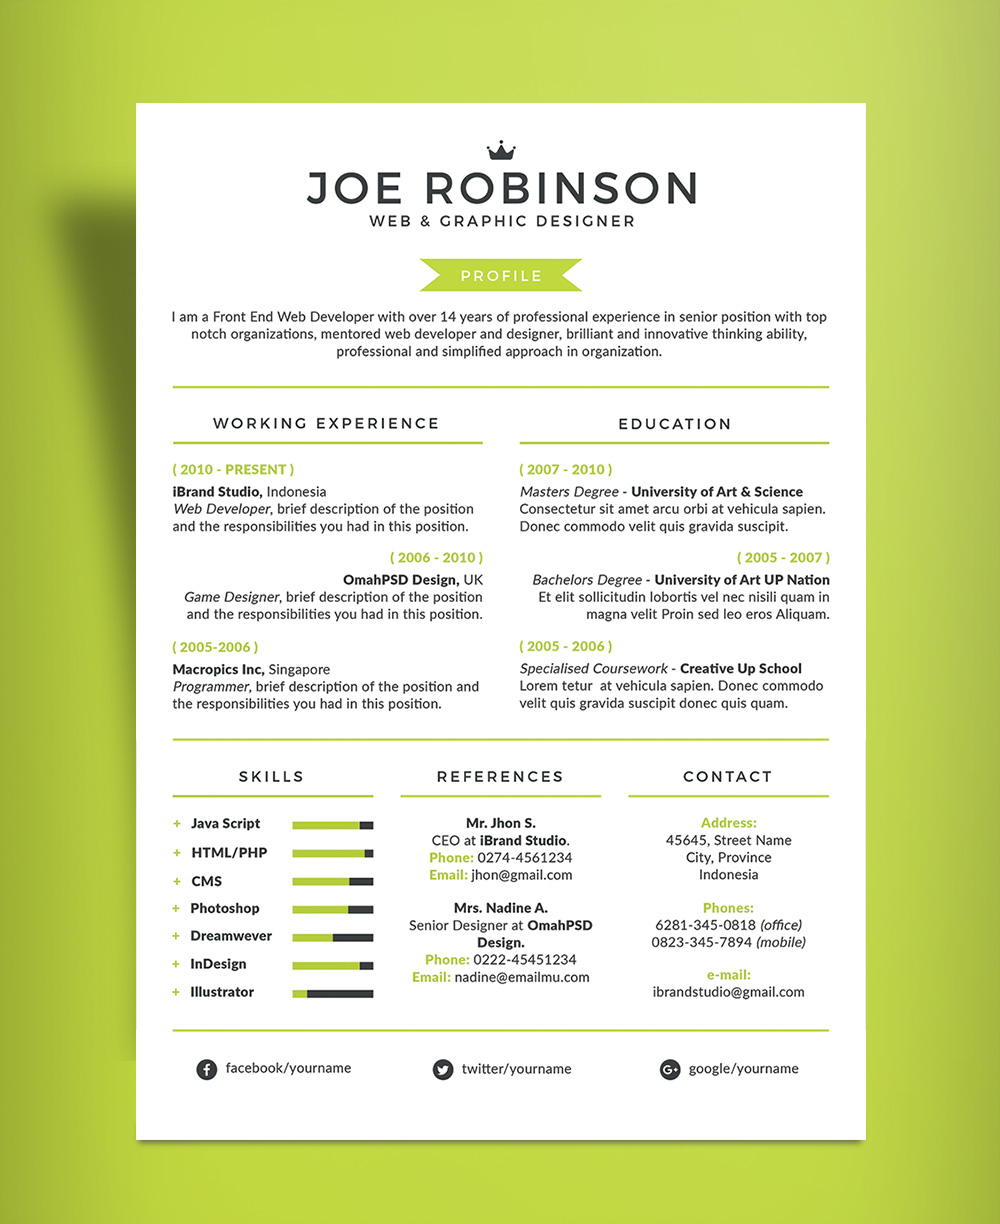 Professional Cv Template Uk Free Free Creative Professional Photoshop Cv Template Free Elegant And Professional Resume Cv Design Template In